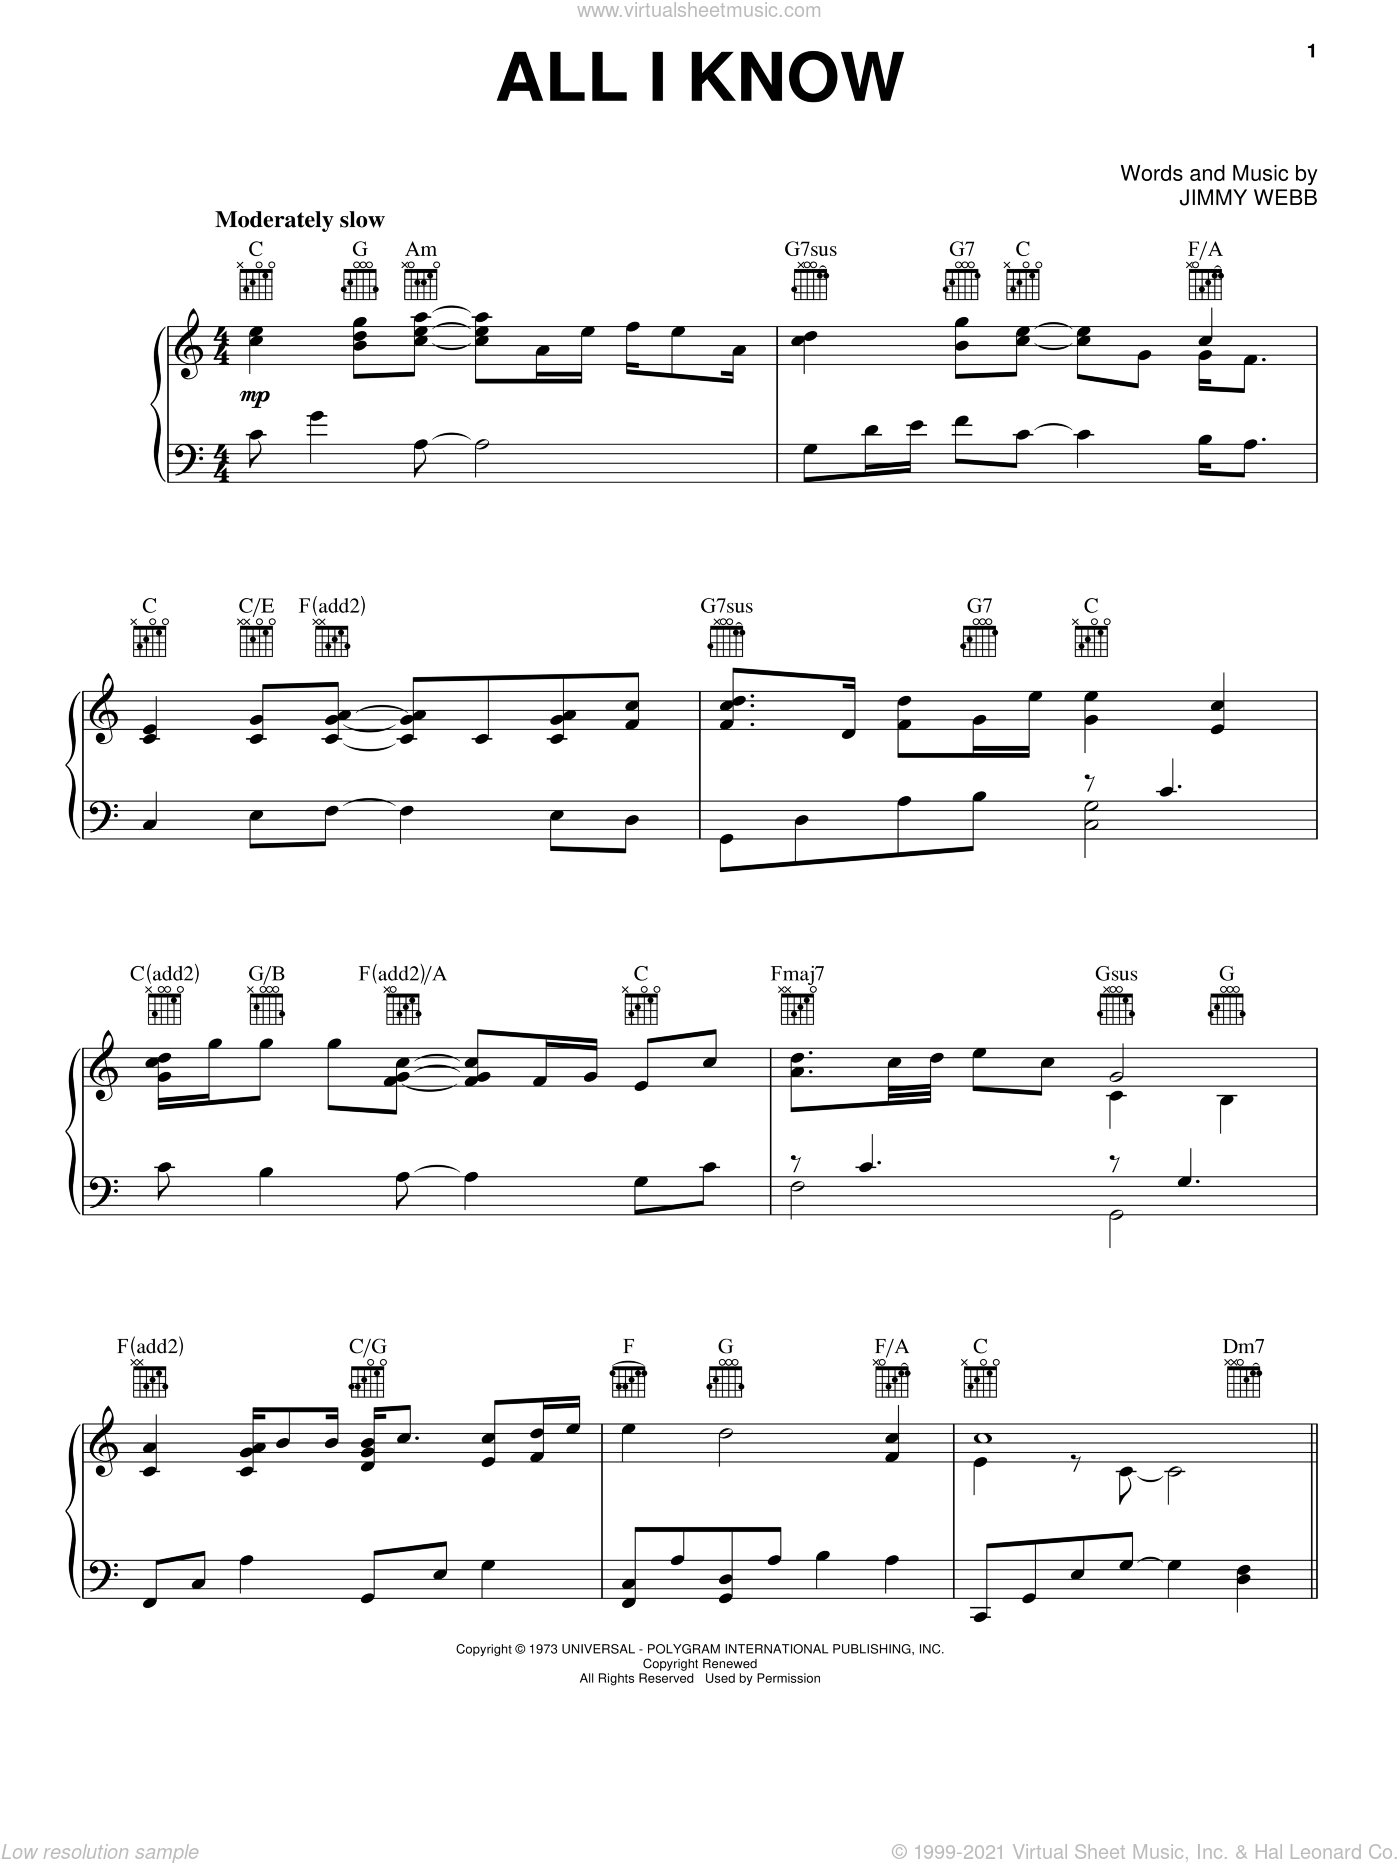 All I Know sheet music for voice, piano or guitar by Jimmy Webb. Score Image Preview.